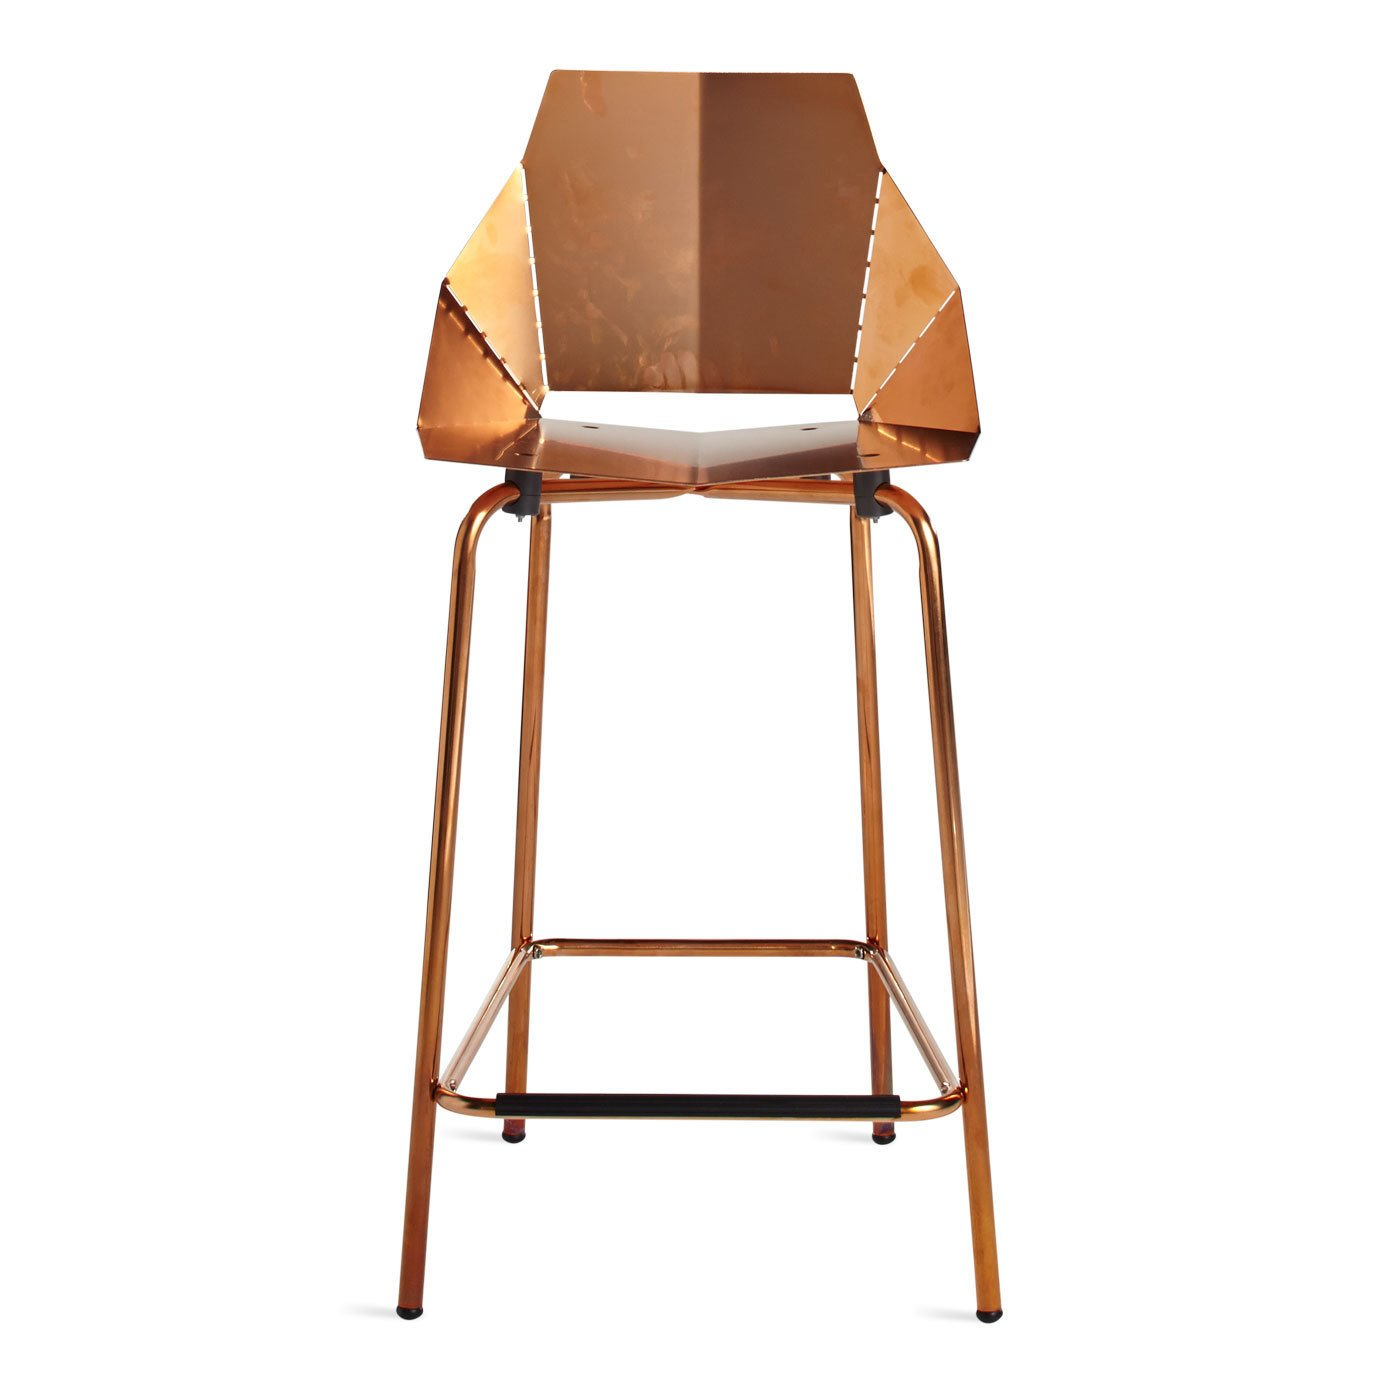 Copper Real Good Counter Stool A copper plated finish that is intended to patina naturally with handling and age for a unique look. The Copper Real Good Counter Stool ships flat and folds along laser-cut lines to create a dynamic and comfortable chair. As skinny as a supermodel yet far more sturdy.   Photo 5 of 10 in Guide to Understanding Laser, Plasma, and Water-Jet Cutting in Design from Blu Dot   Dining